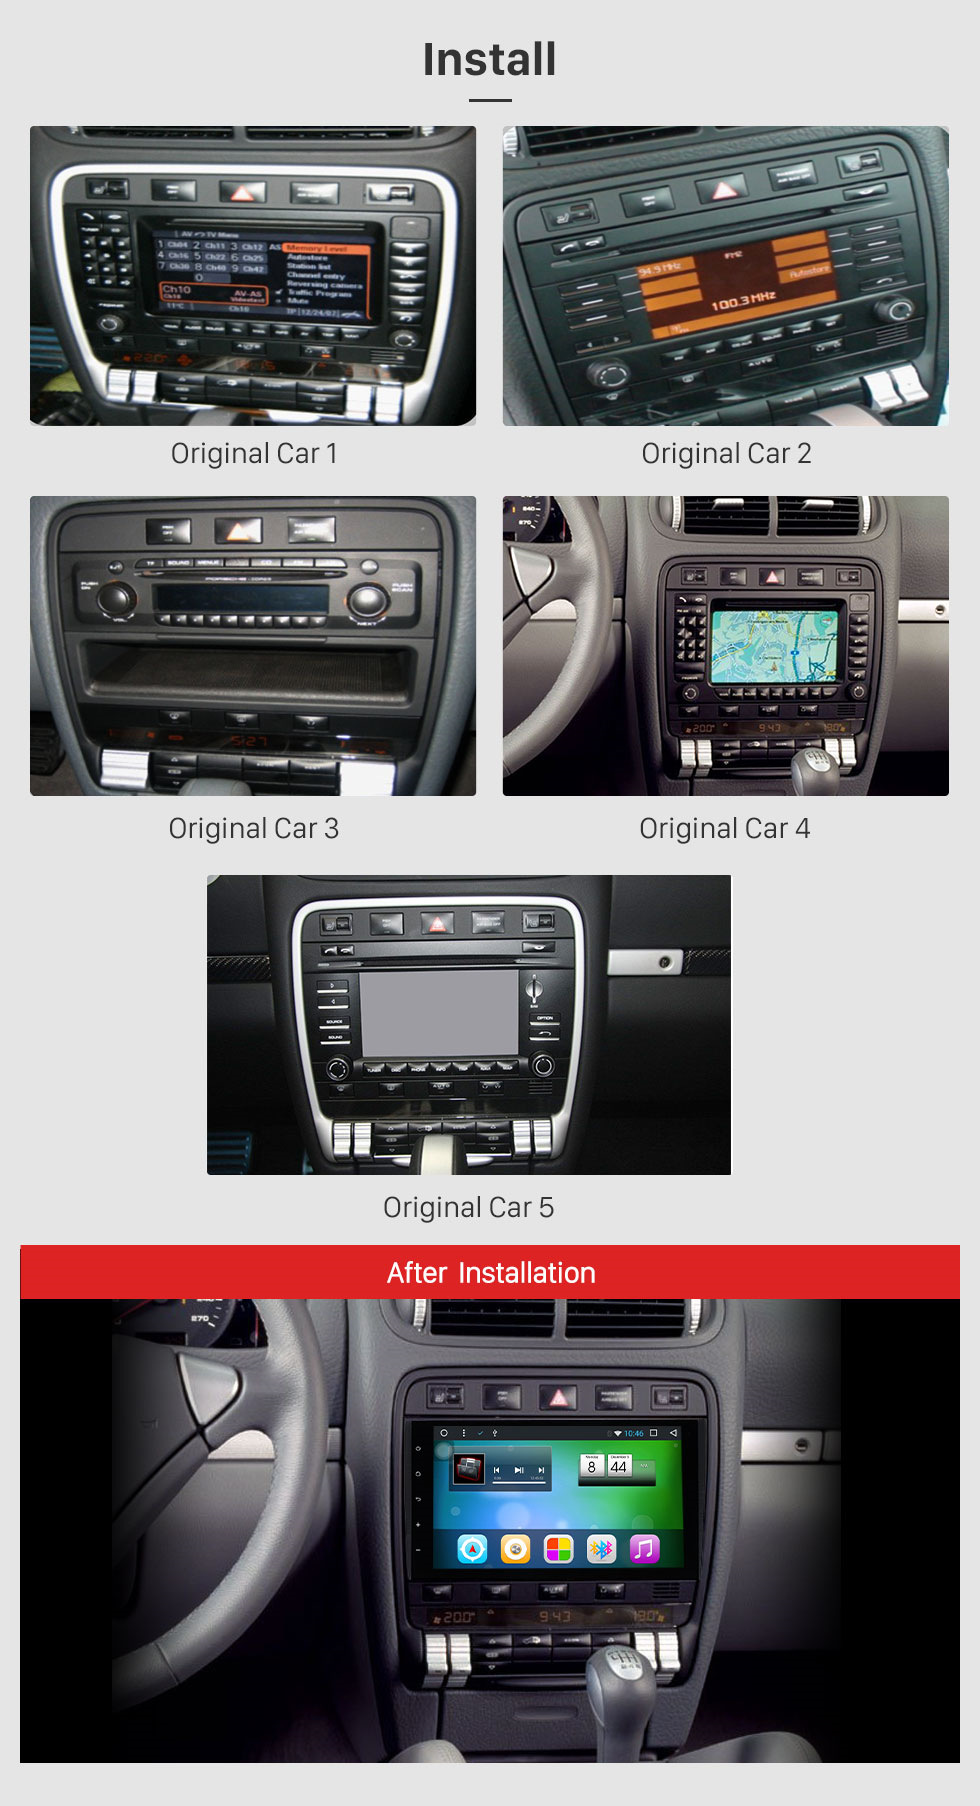 Seicane 2003-2010 PORSCHE Cayenne Android 8.1 GPS Navigation Radio Mirror link Touch Screen OBD2 Bluetooth DVR Backup camera TV USB SD Steering Wheel control WIFI